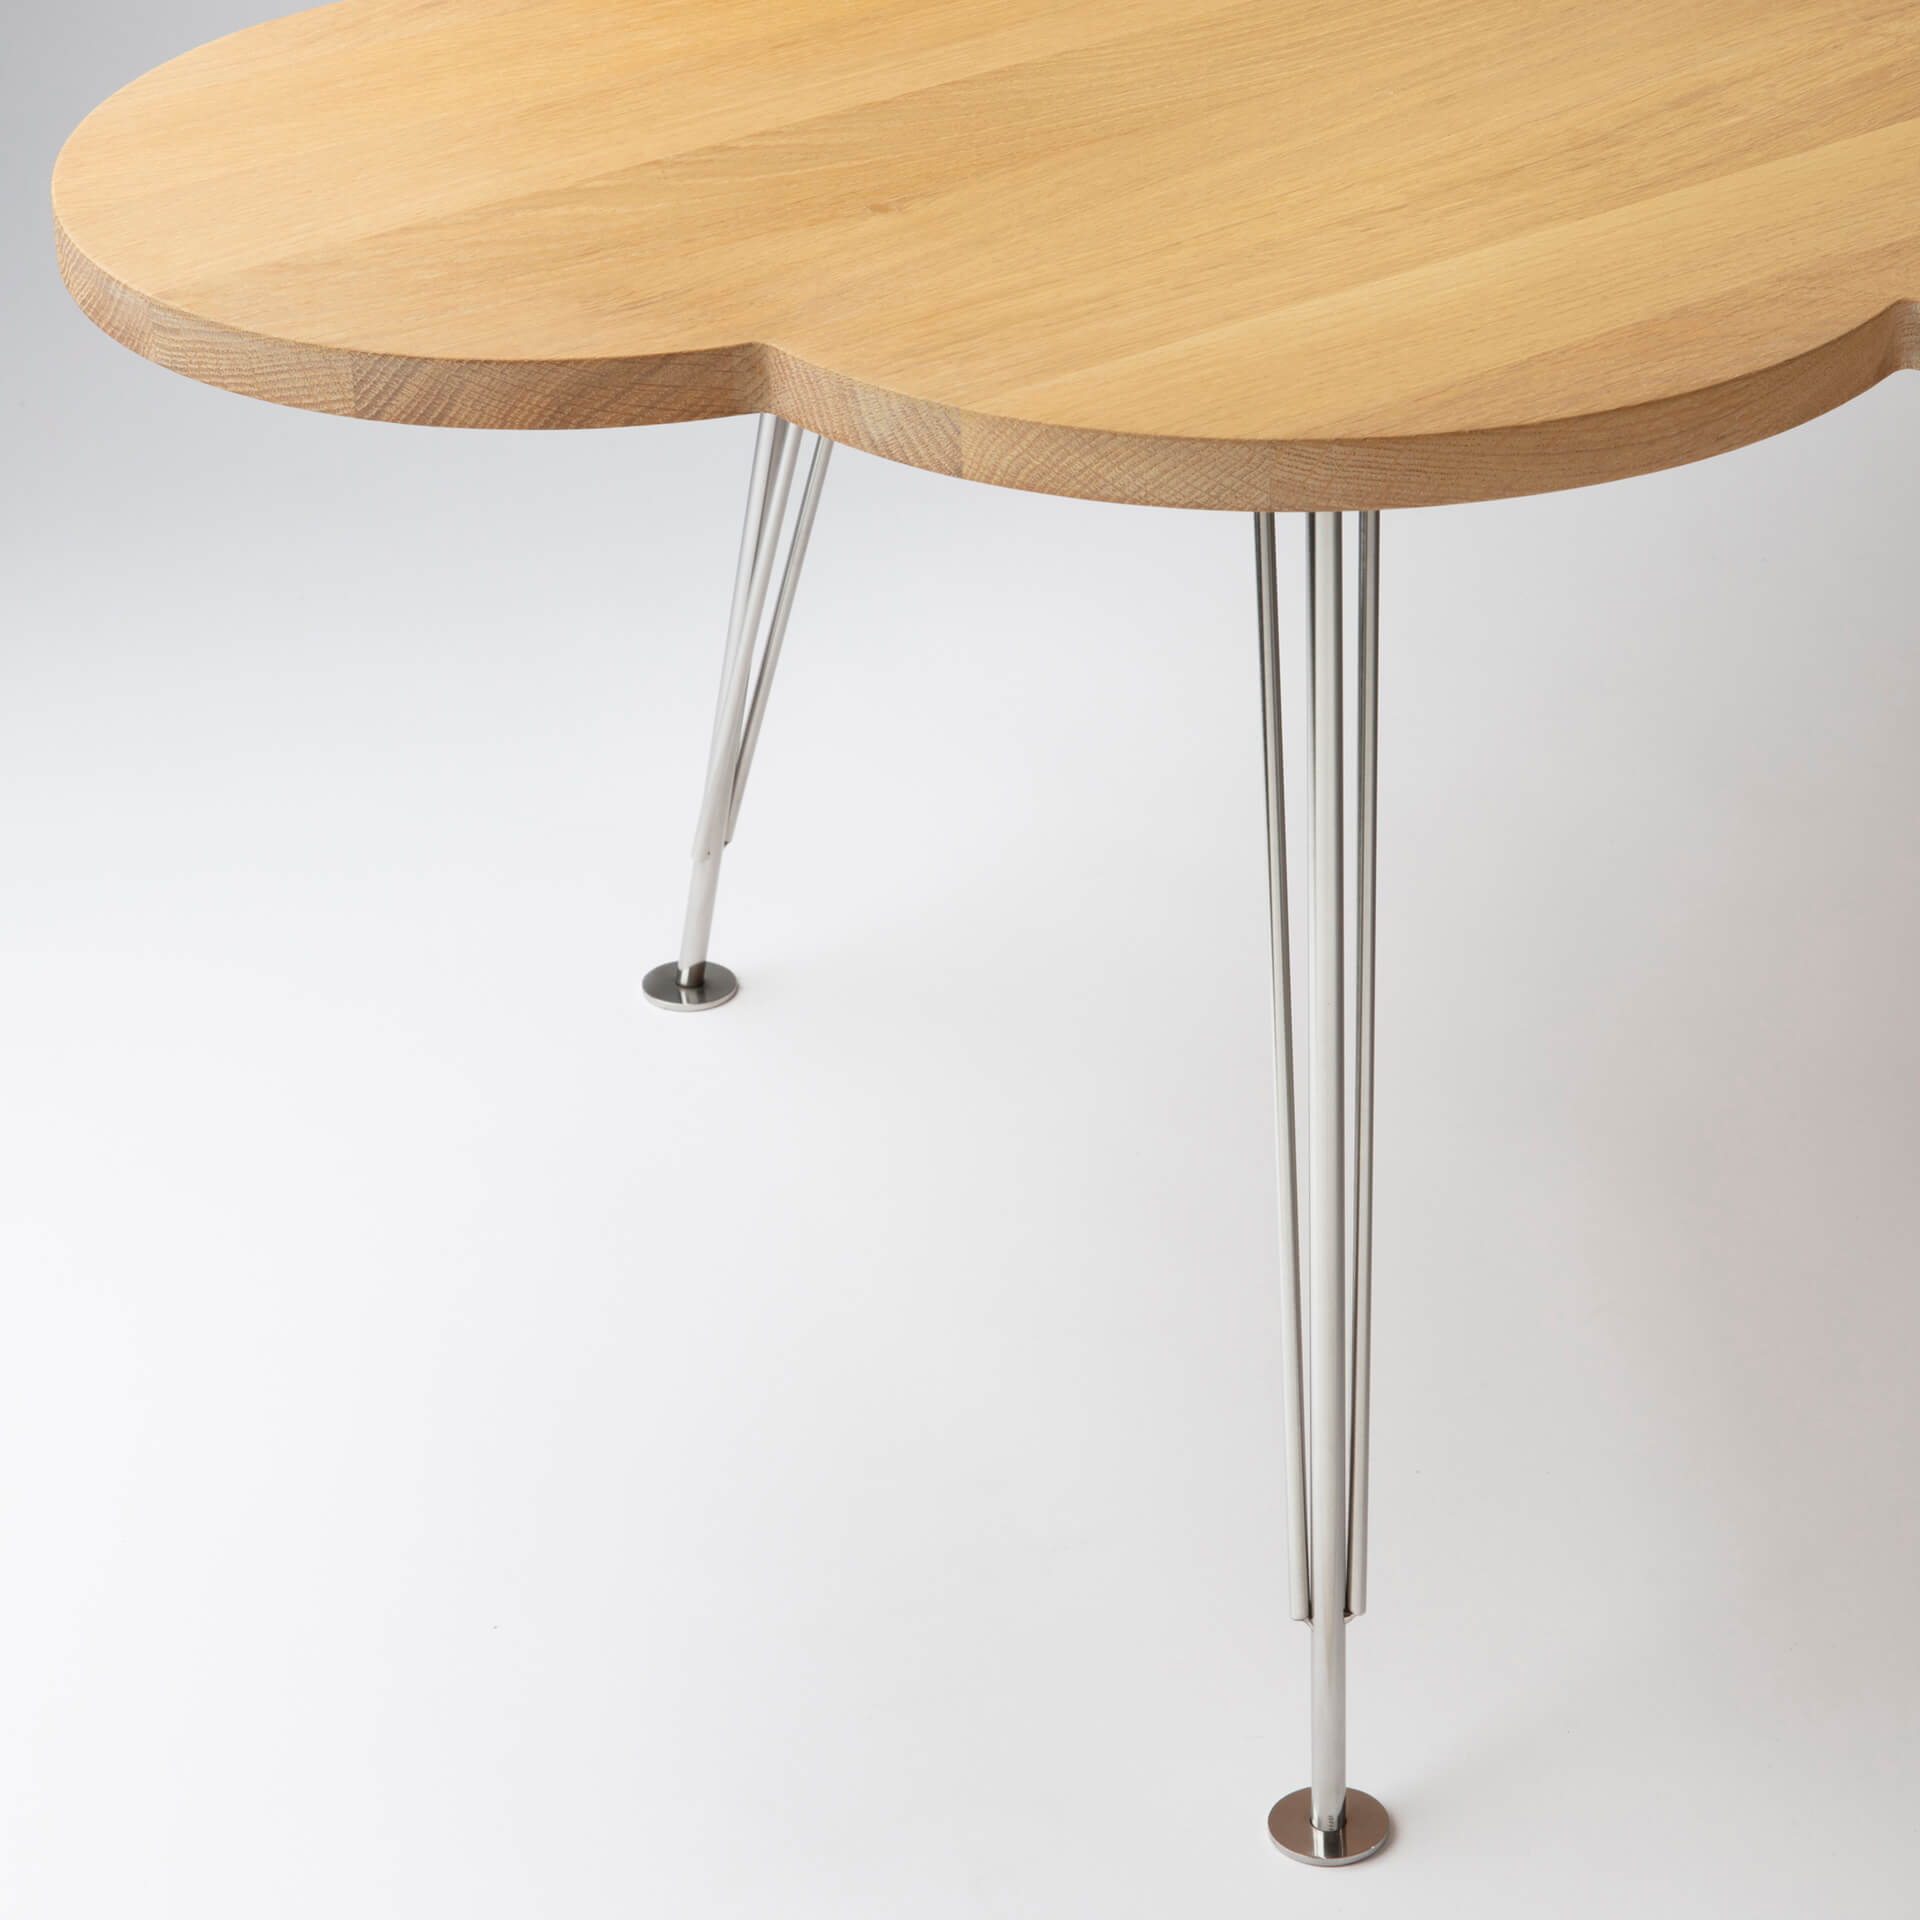 The Cloud Table – coffee table – oak – steel legs – Molnbordet